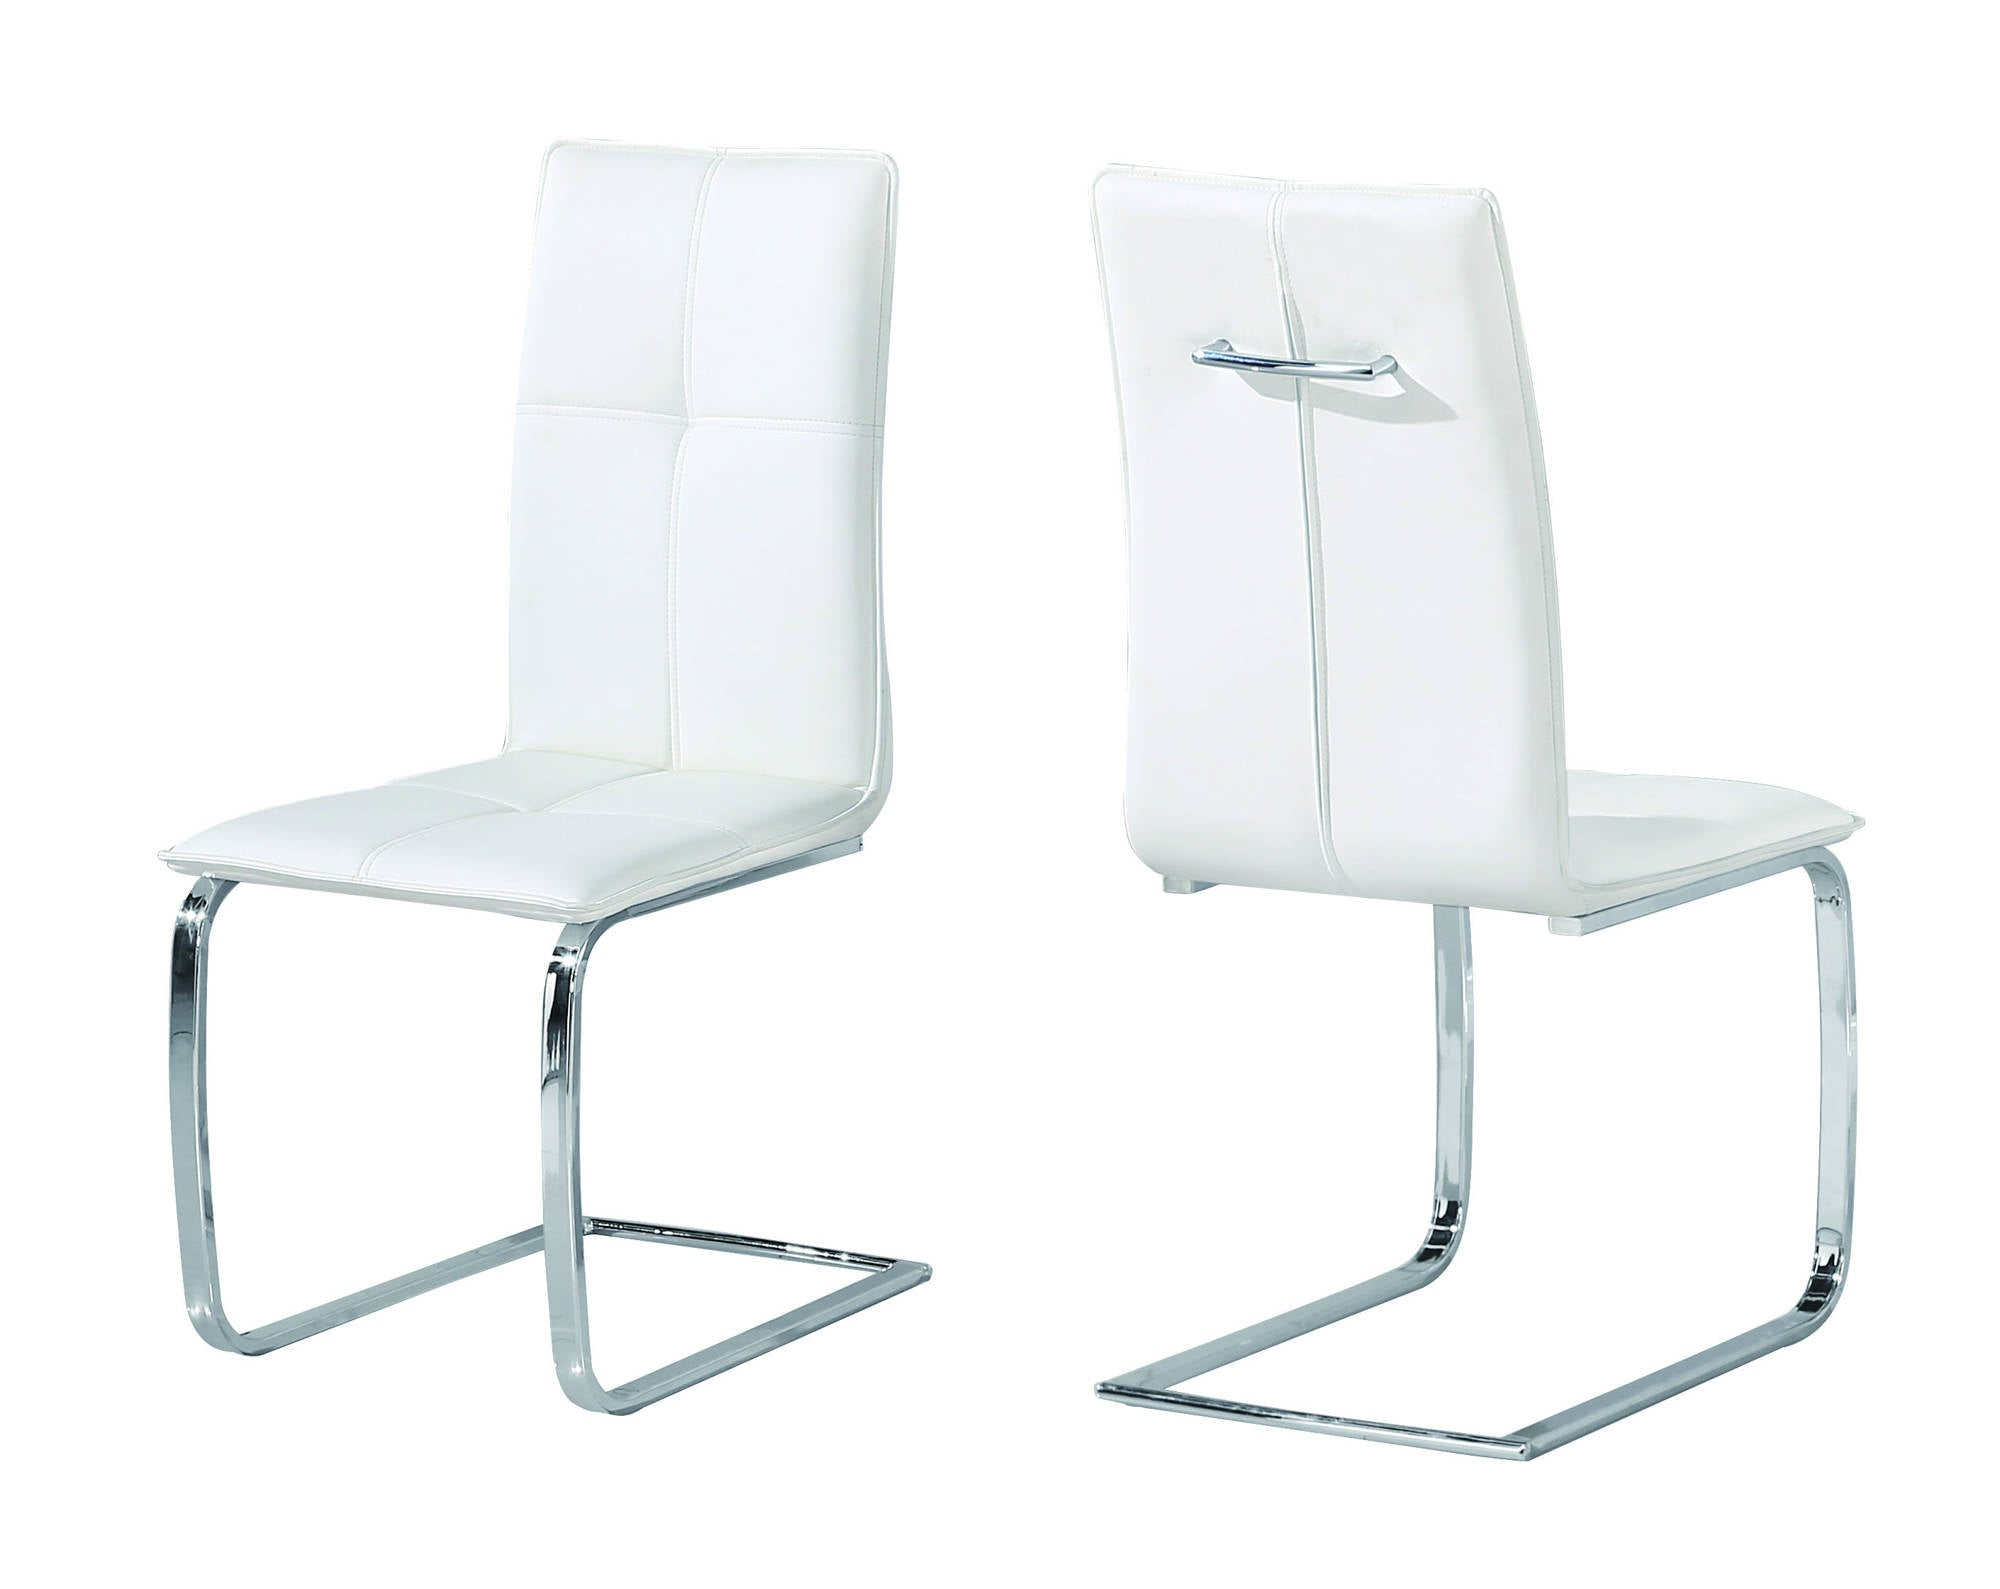 Oeuvre Dining Chairs in White - Ezzo